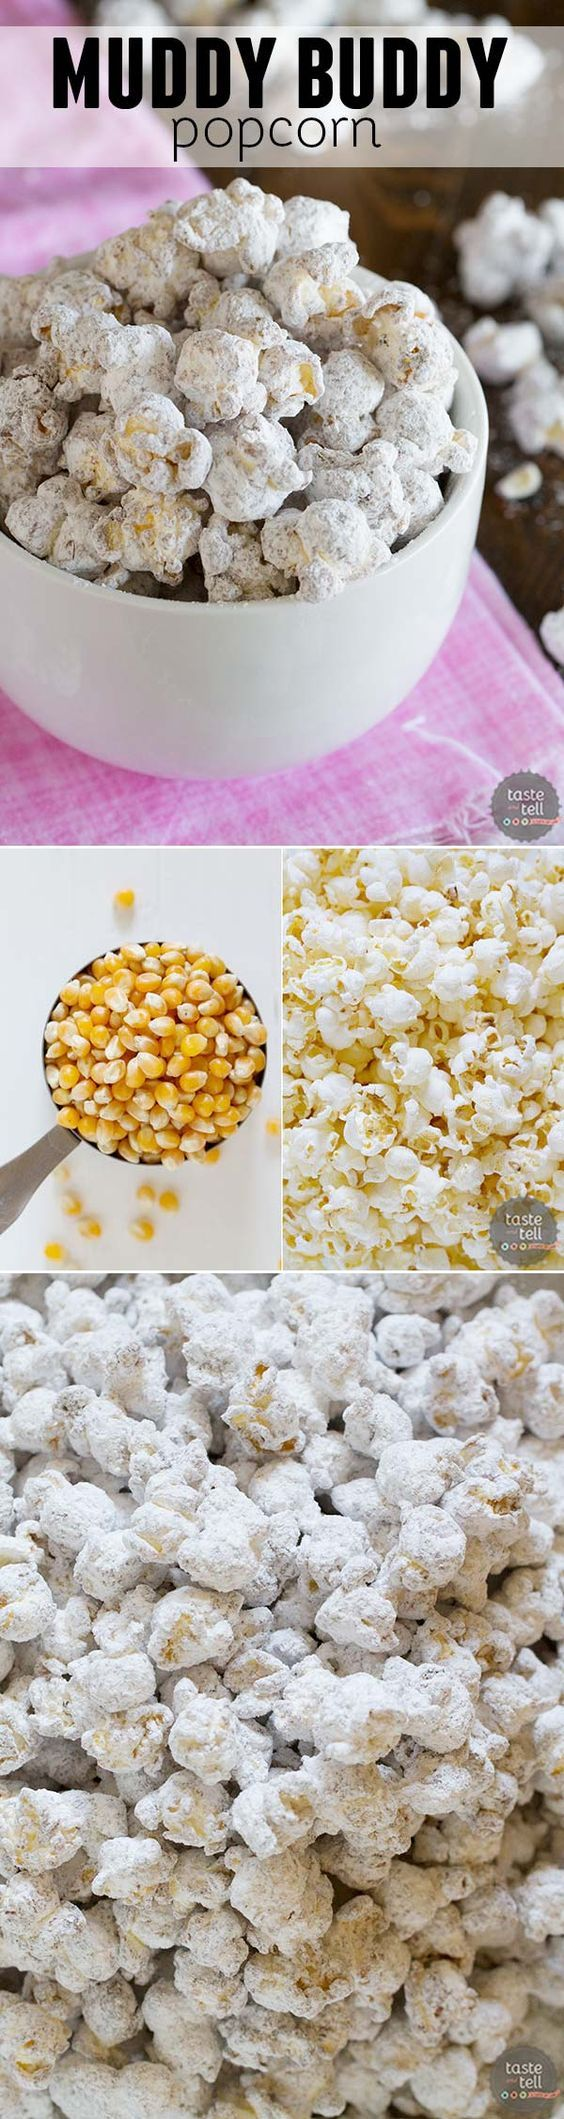 Muddy Buddy Popcorn Taste and Tell Recipe Snacks